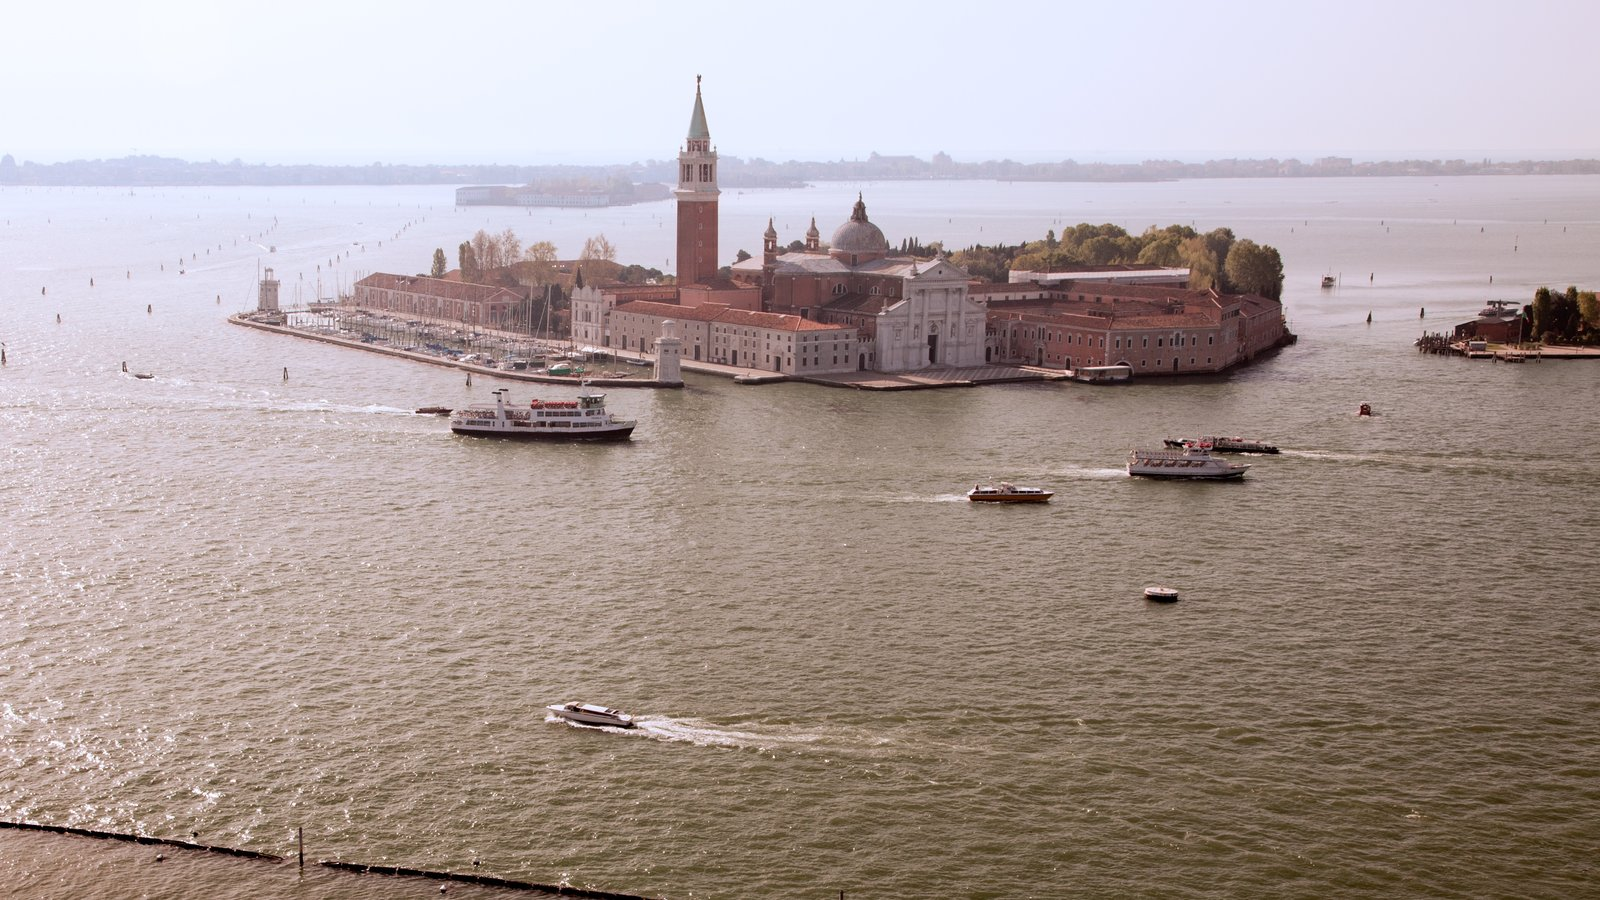 Church of San Giorgio Maggiore showing island images, a church or cathedral and religious aspects